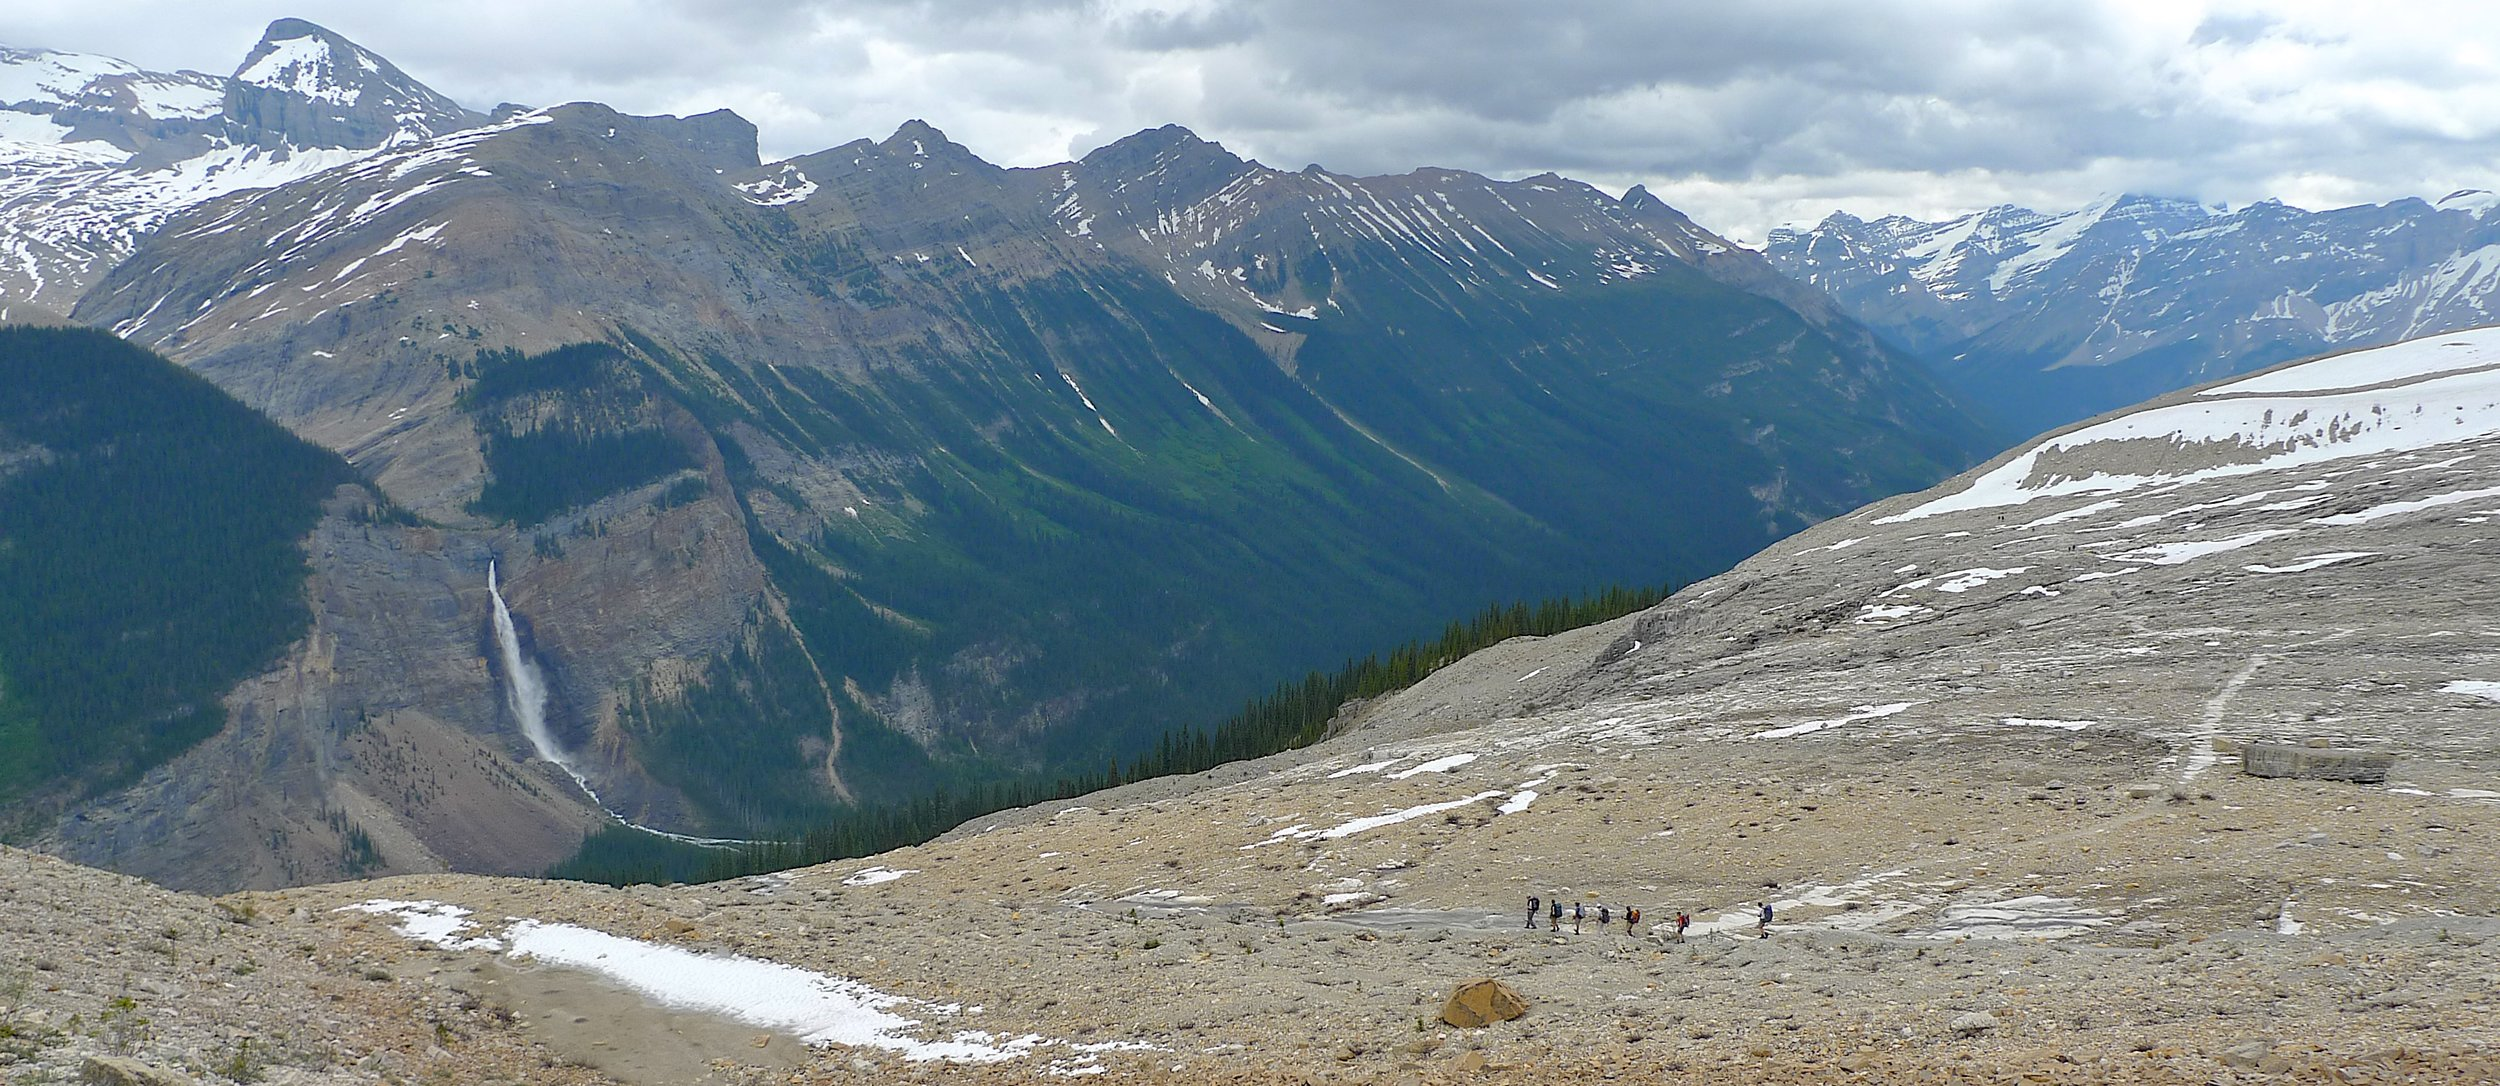 The Iceline trail in the Yoho National Park. Takawa Falls is in the valley below.